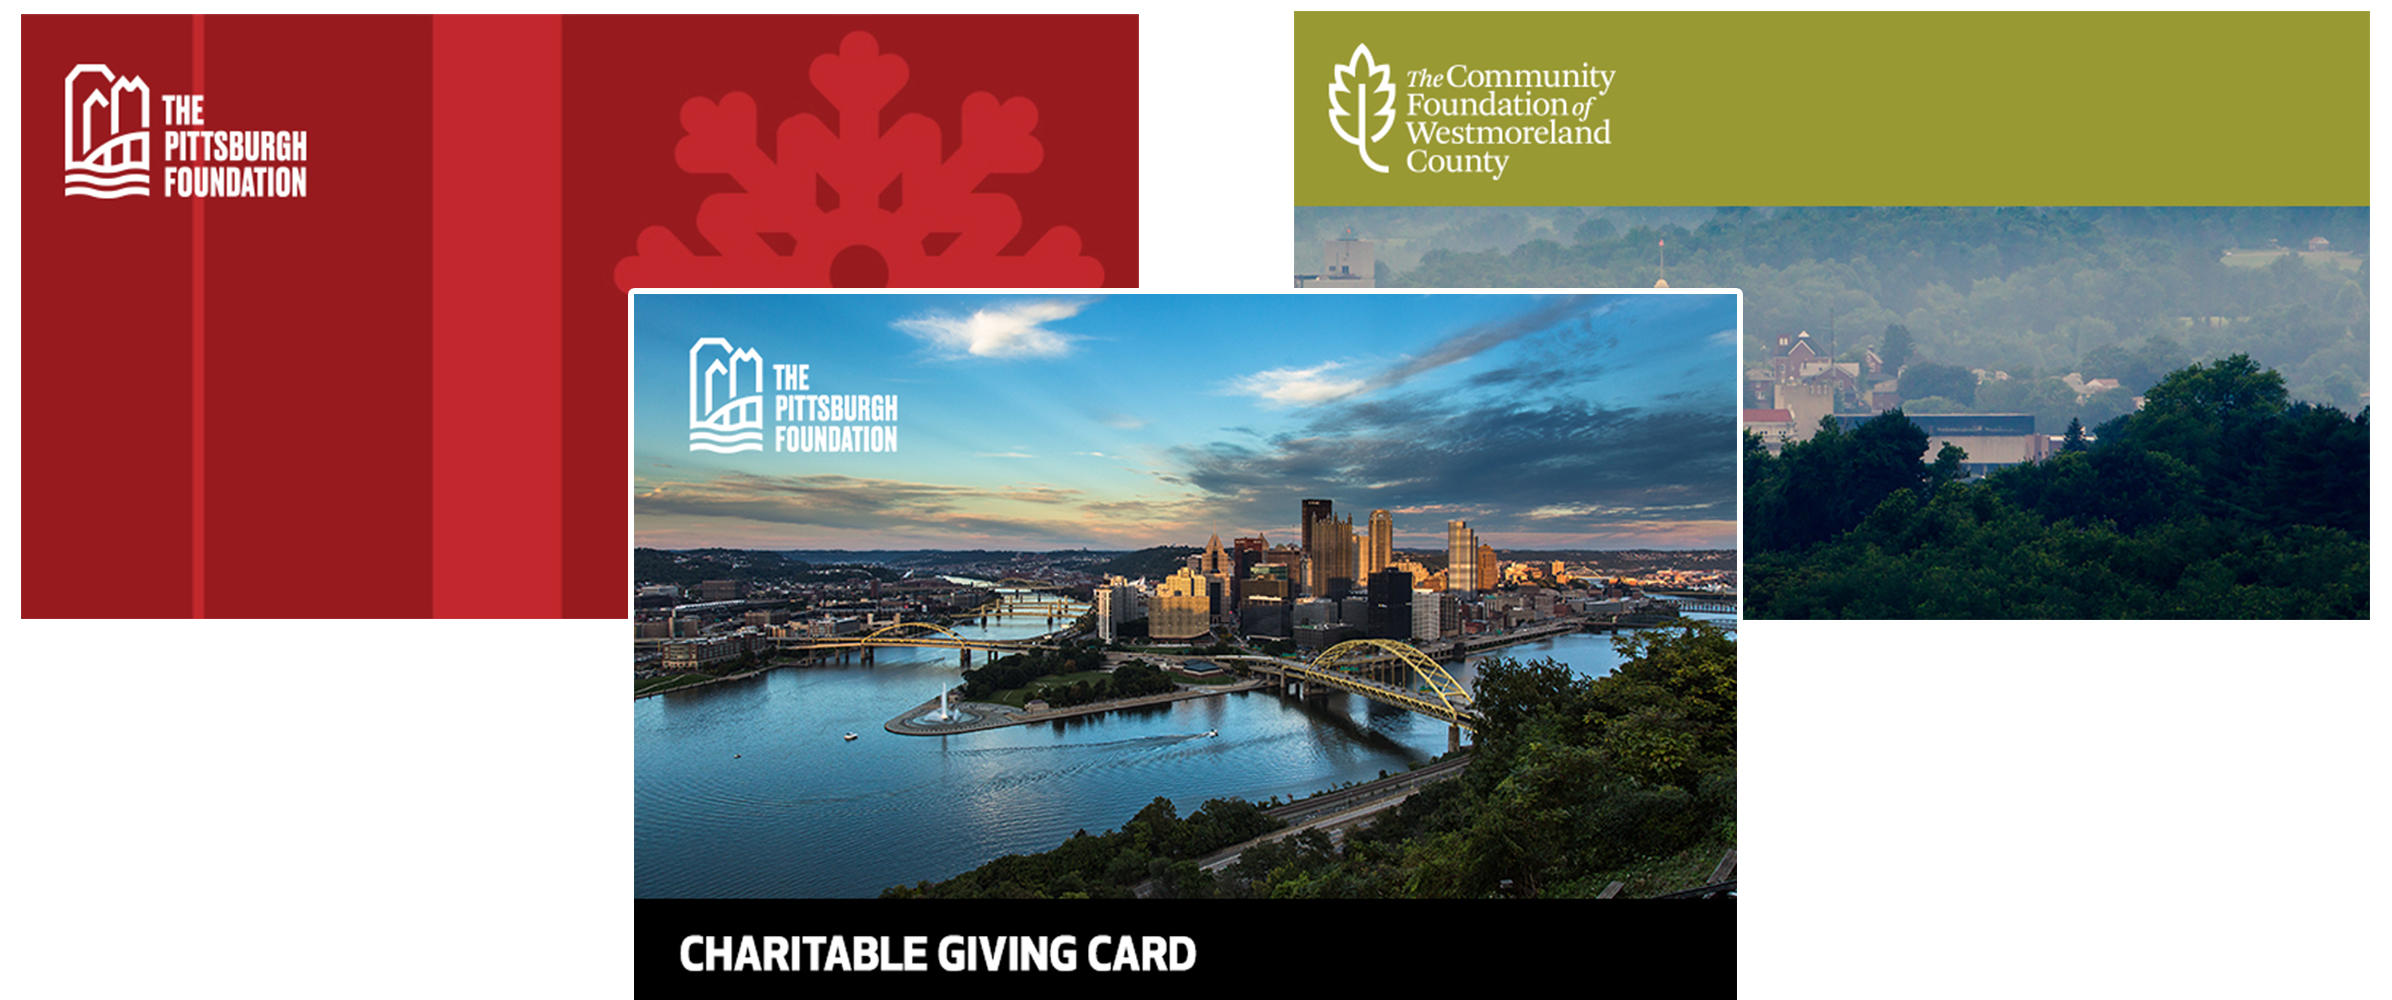 Charitable Giving Cards are available in three designs and in any denomination over $25.